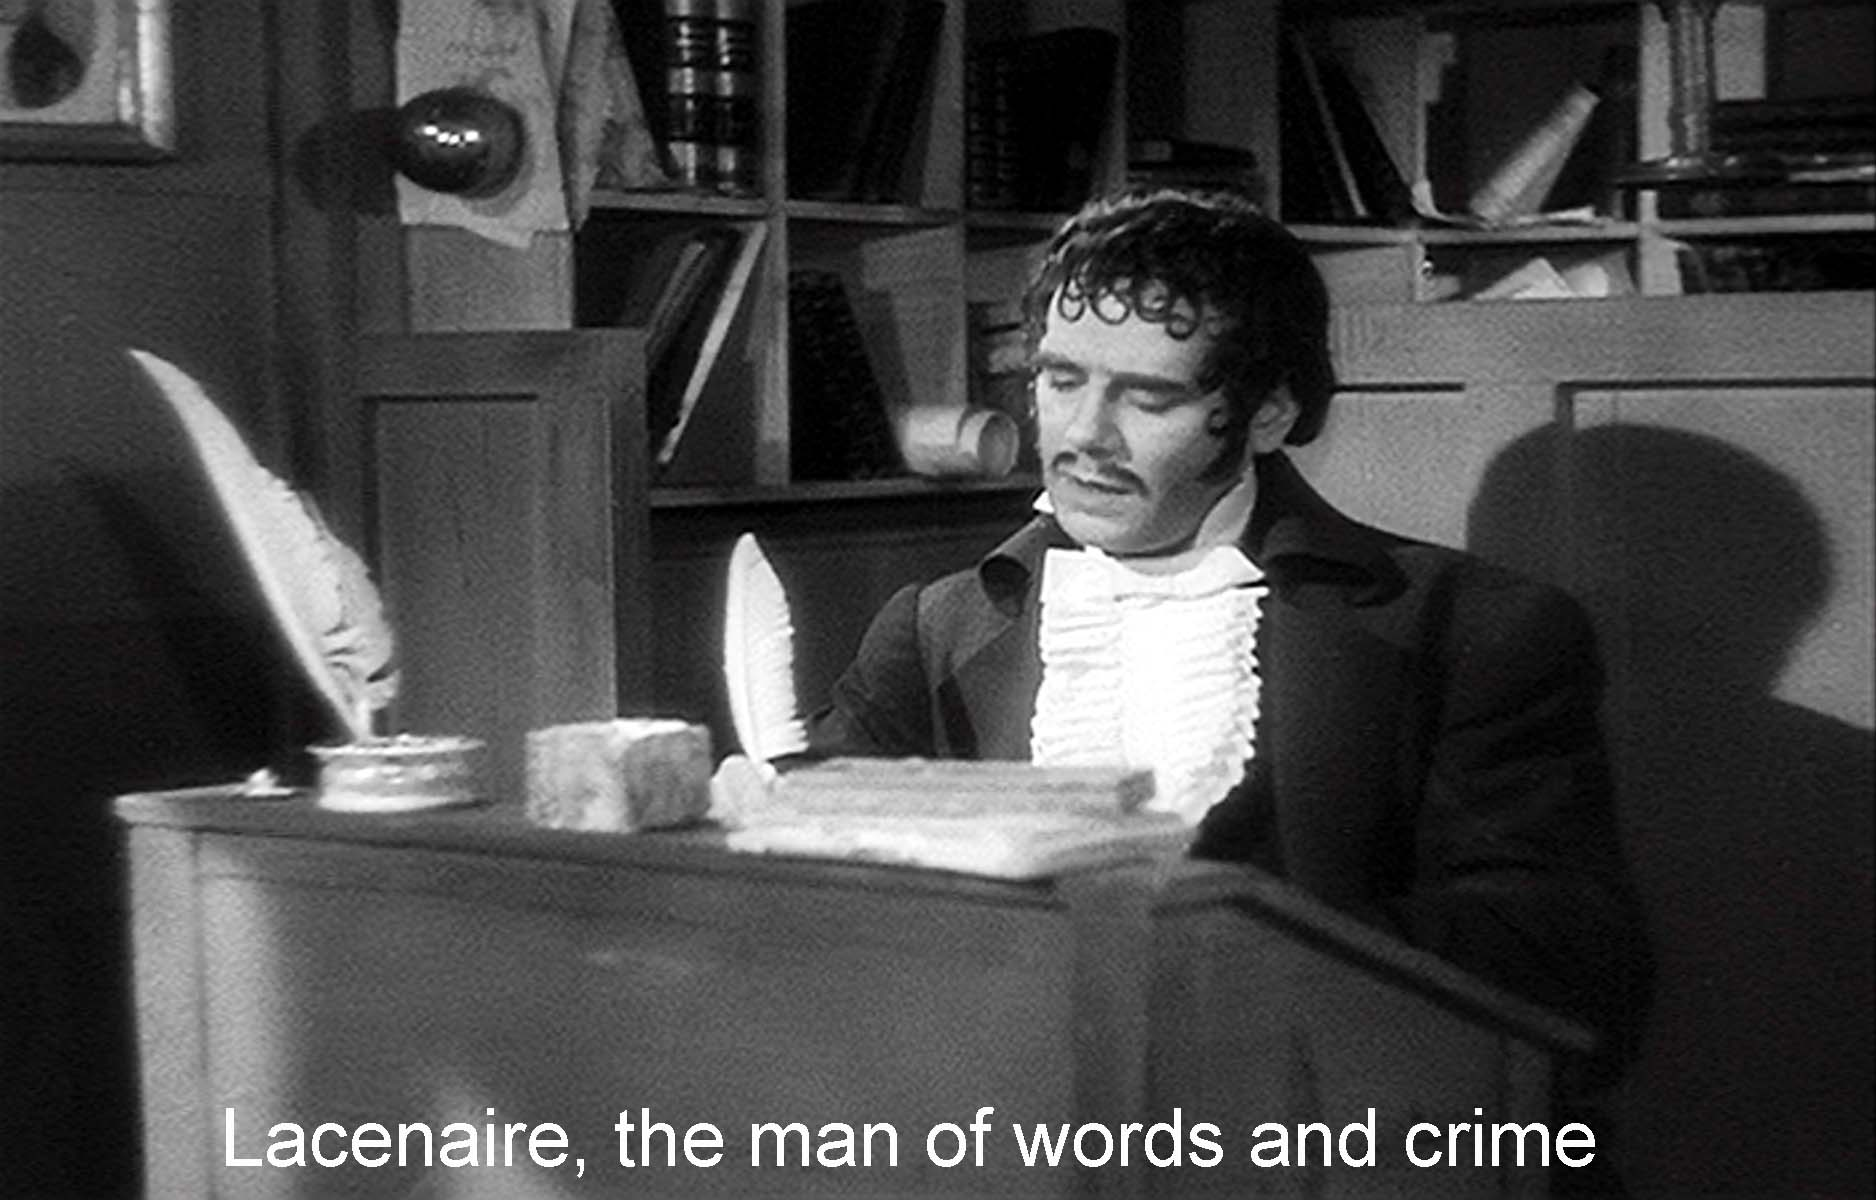 Lacenaire: the man of words and crime